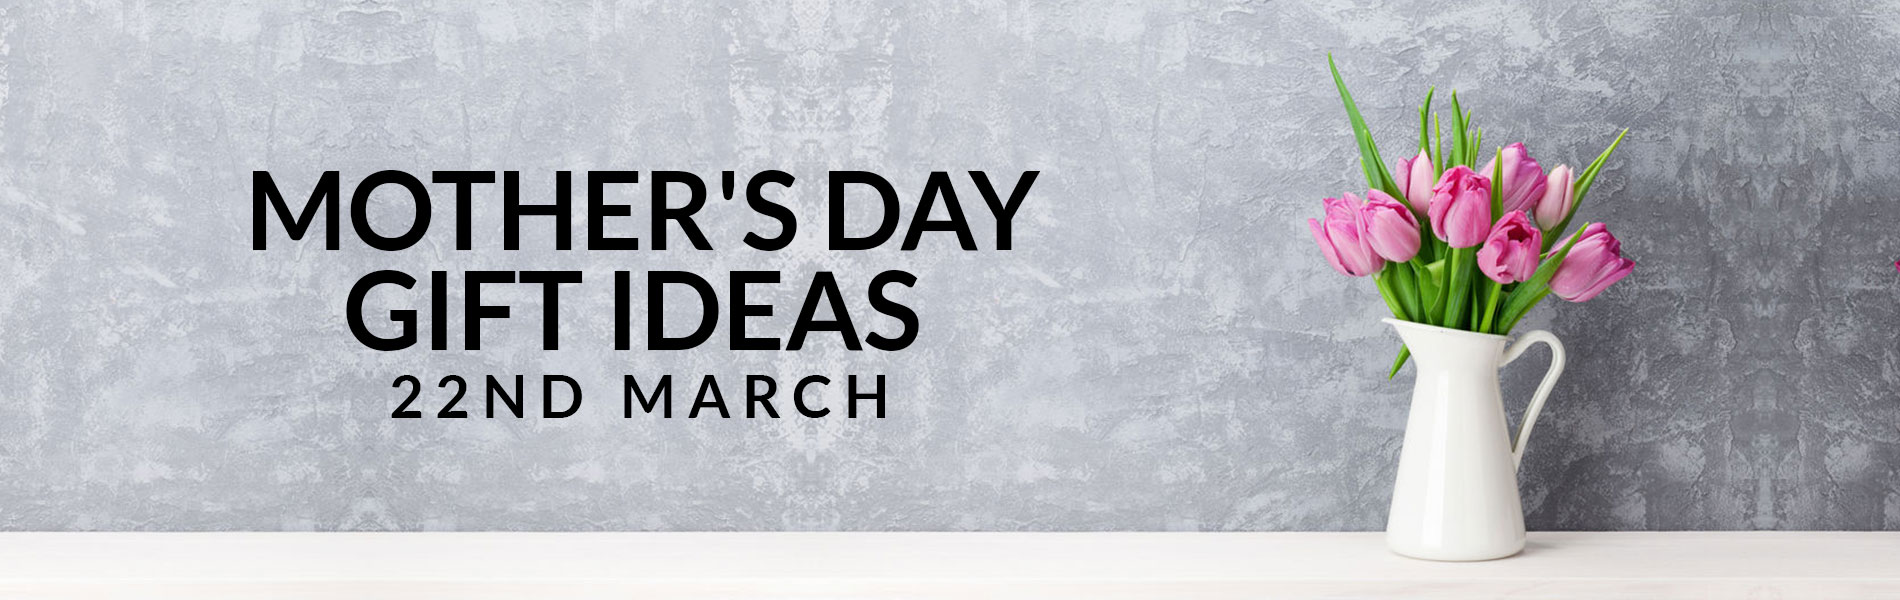 mothers day homepage banner